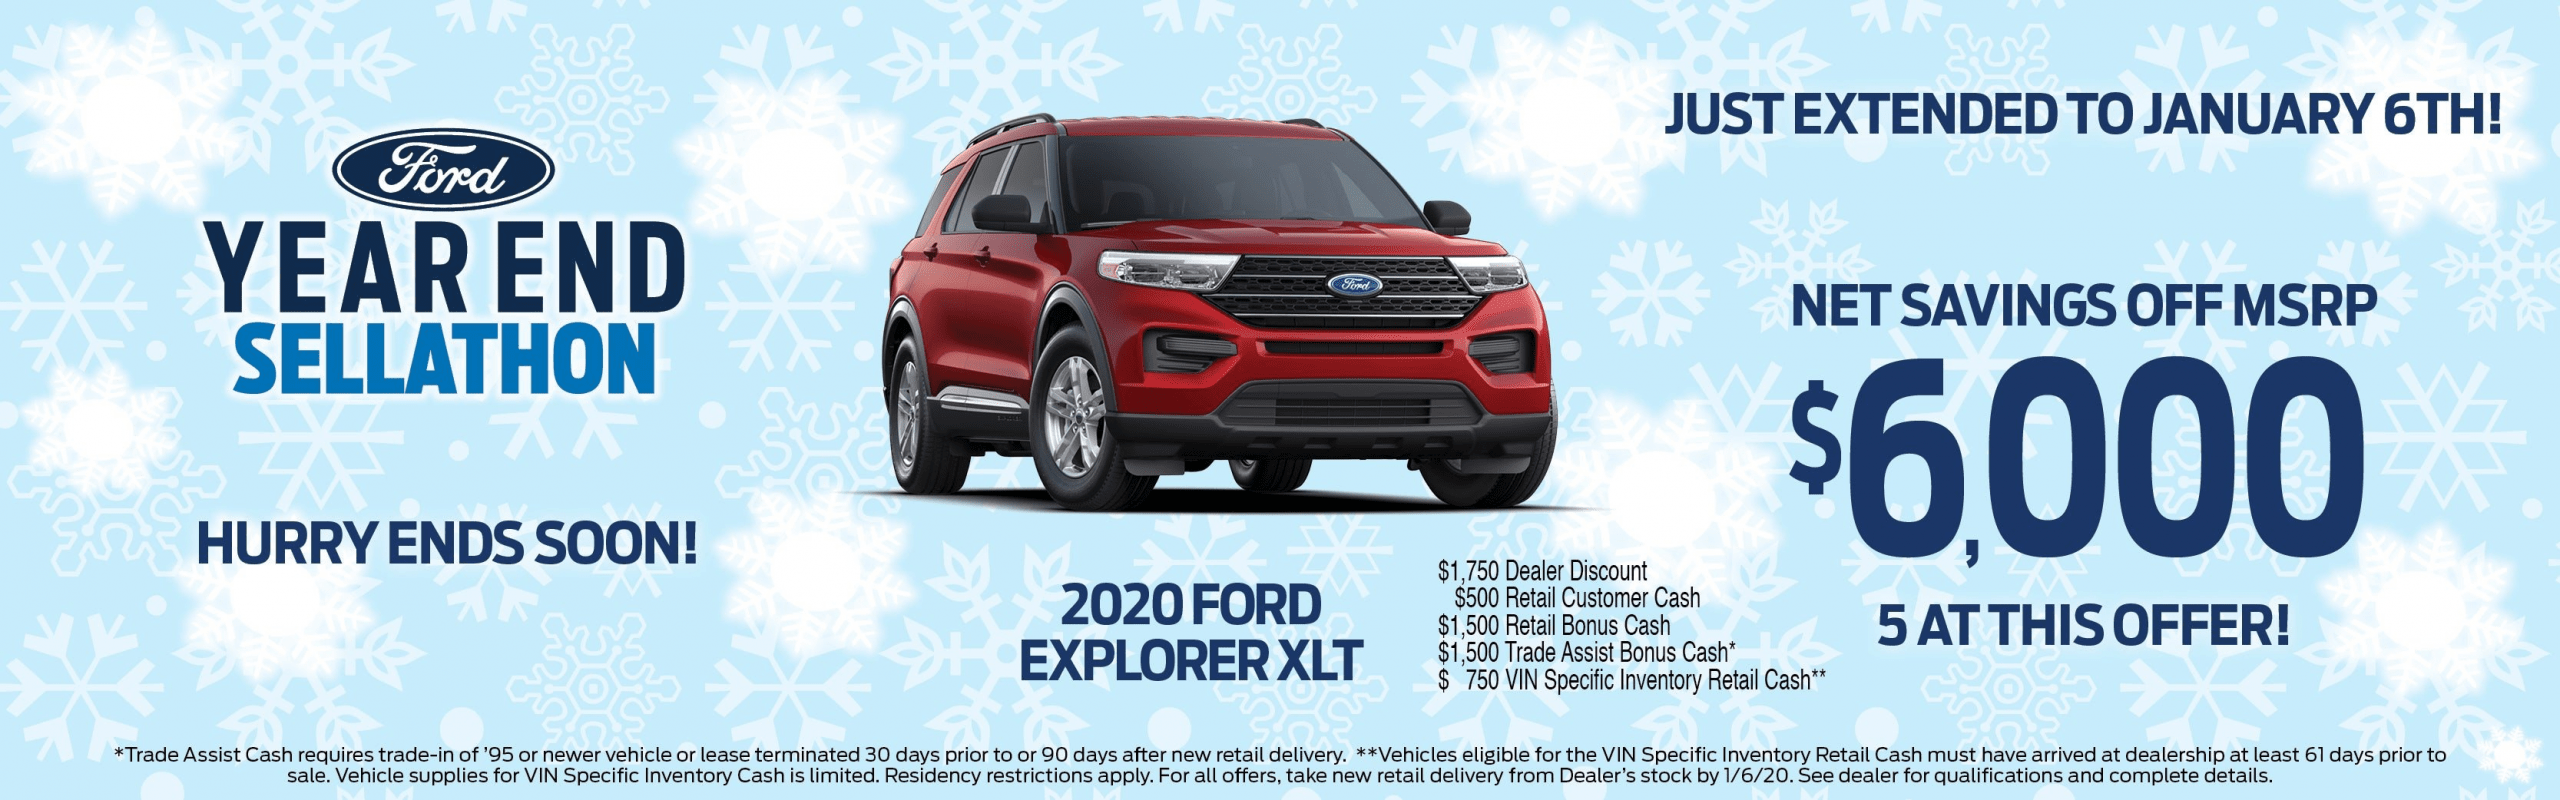 2021 Ford F650 Release Date In 2020 Ford Flex Ford Expedition For Sale Ford